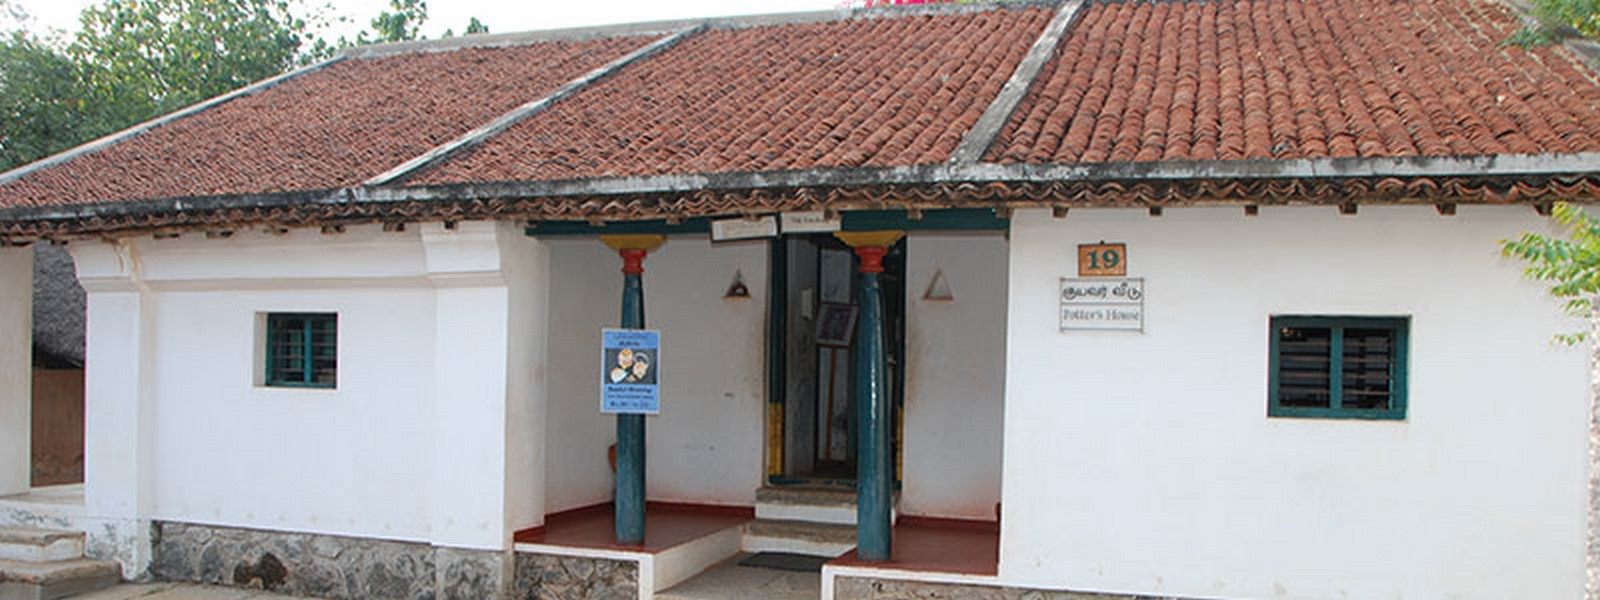 10 Examples of Vernacular architecture in South India - Sheet4